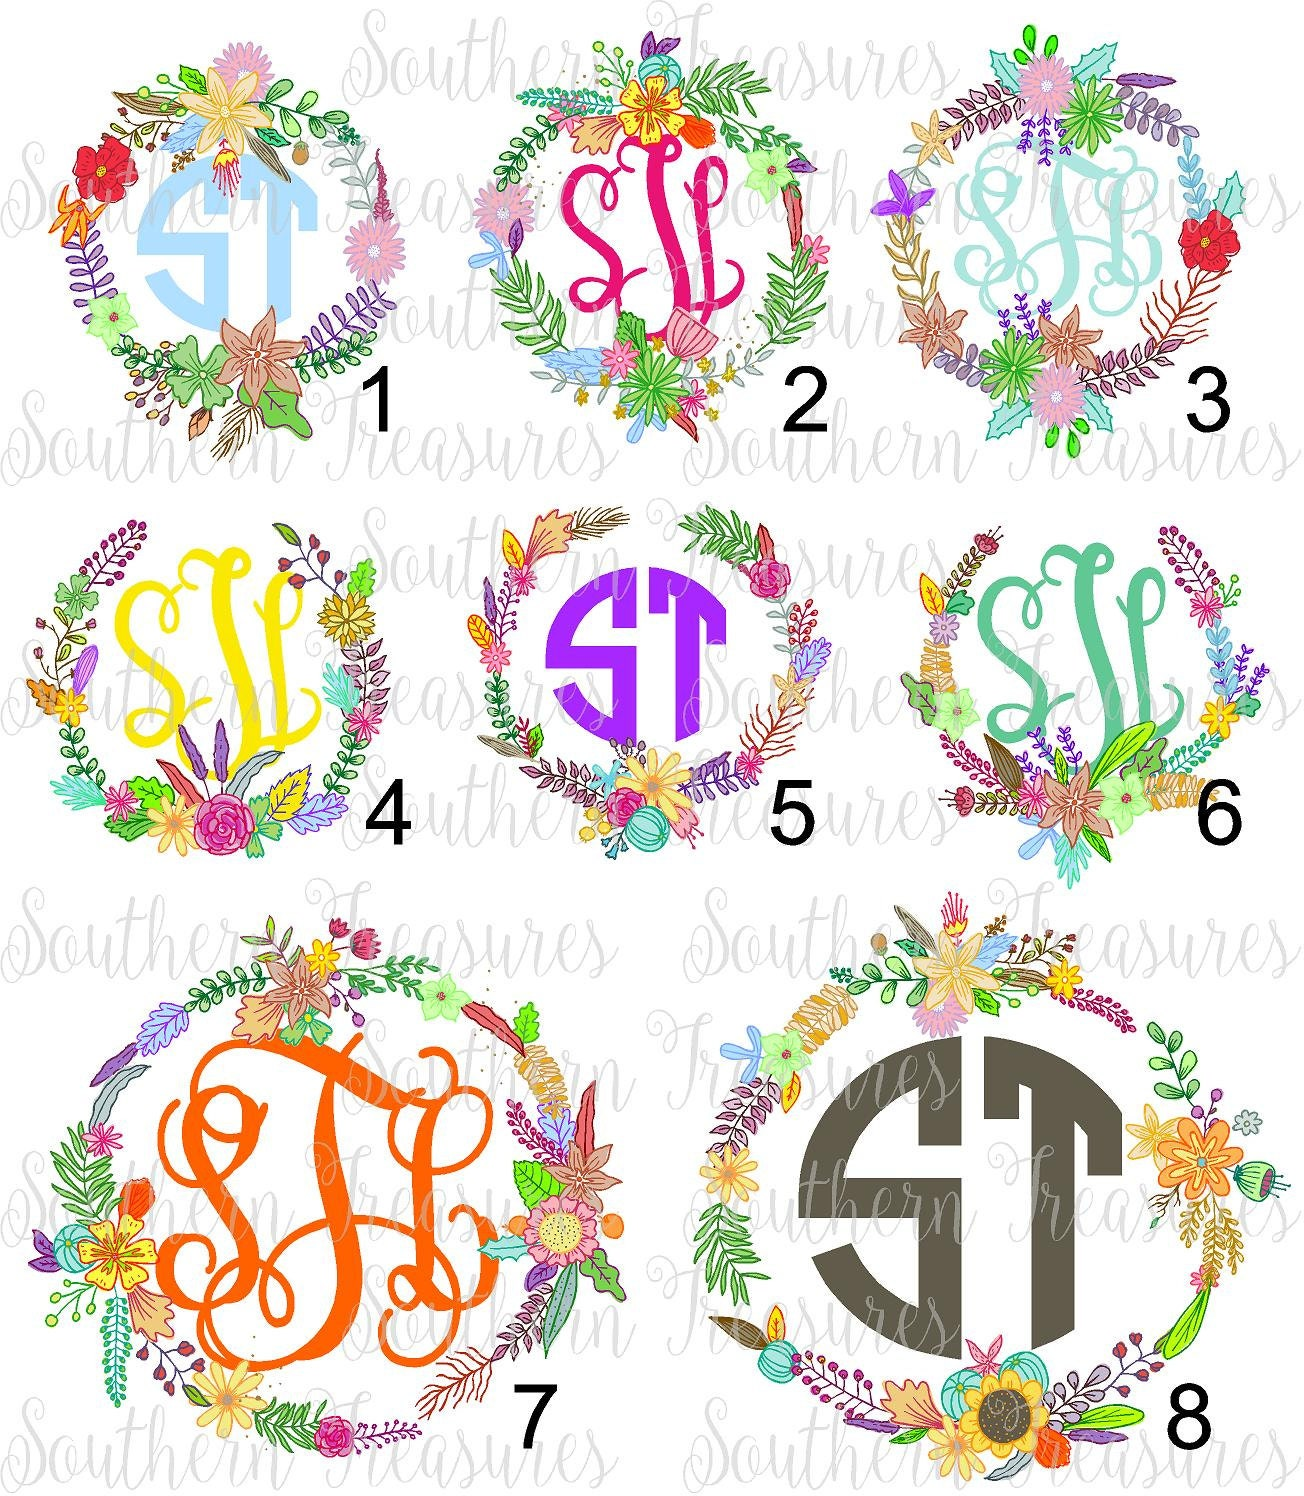 The Floral Project Wreath Monogram Designs Printed Heat Transfer Monogram